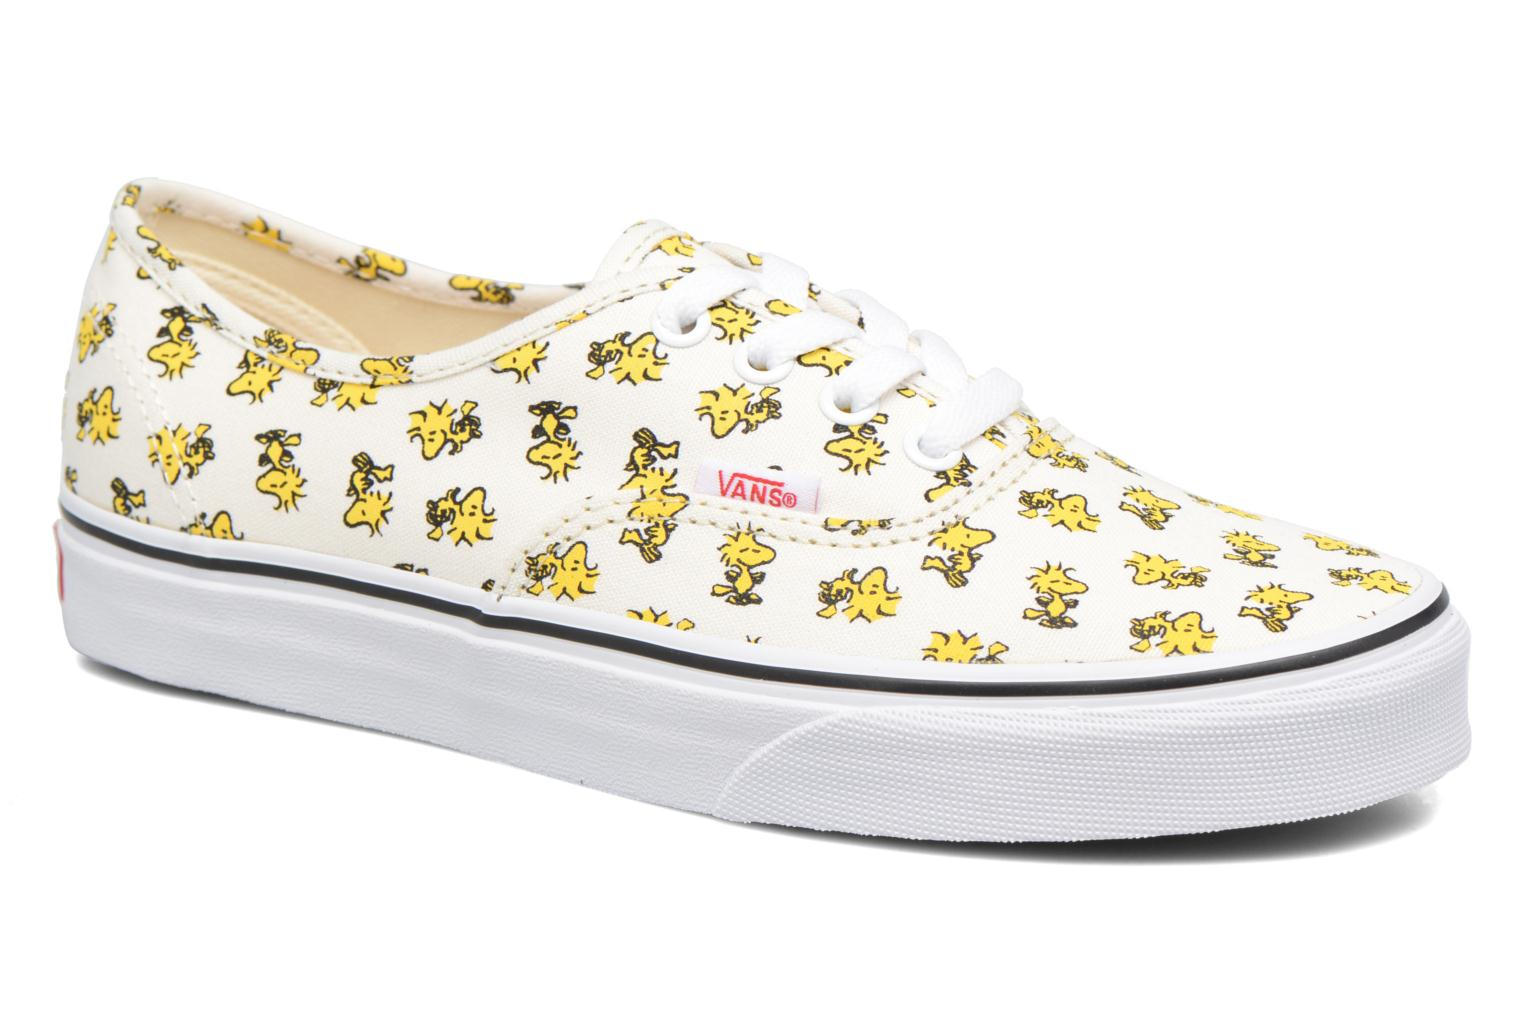 Authentic w x Peanuts Woodstock/Bone